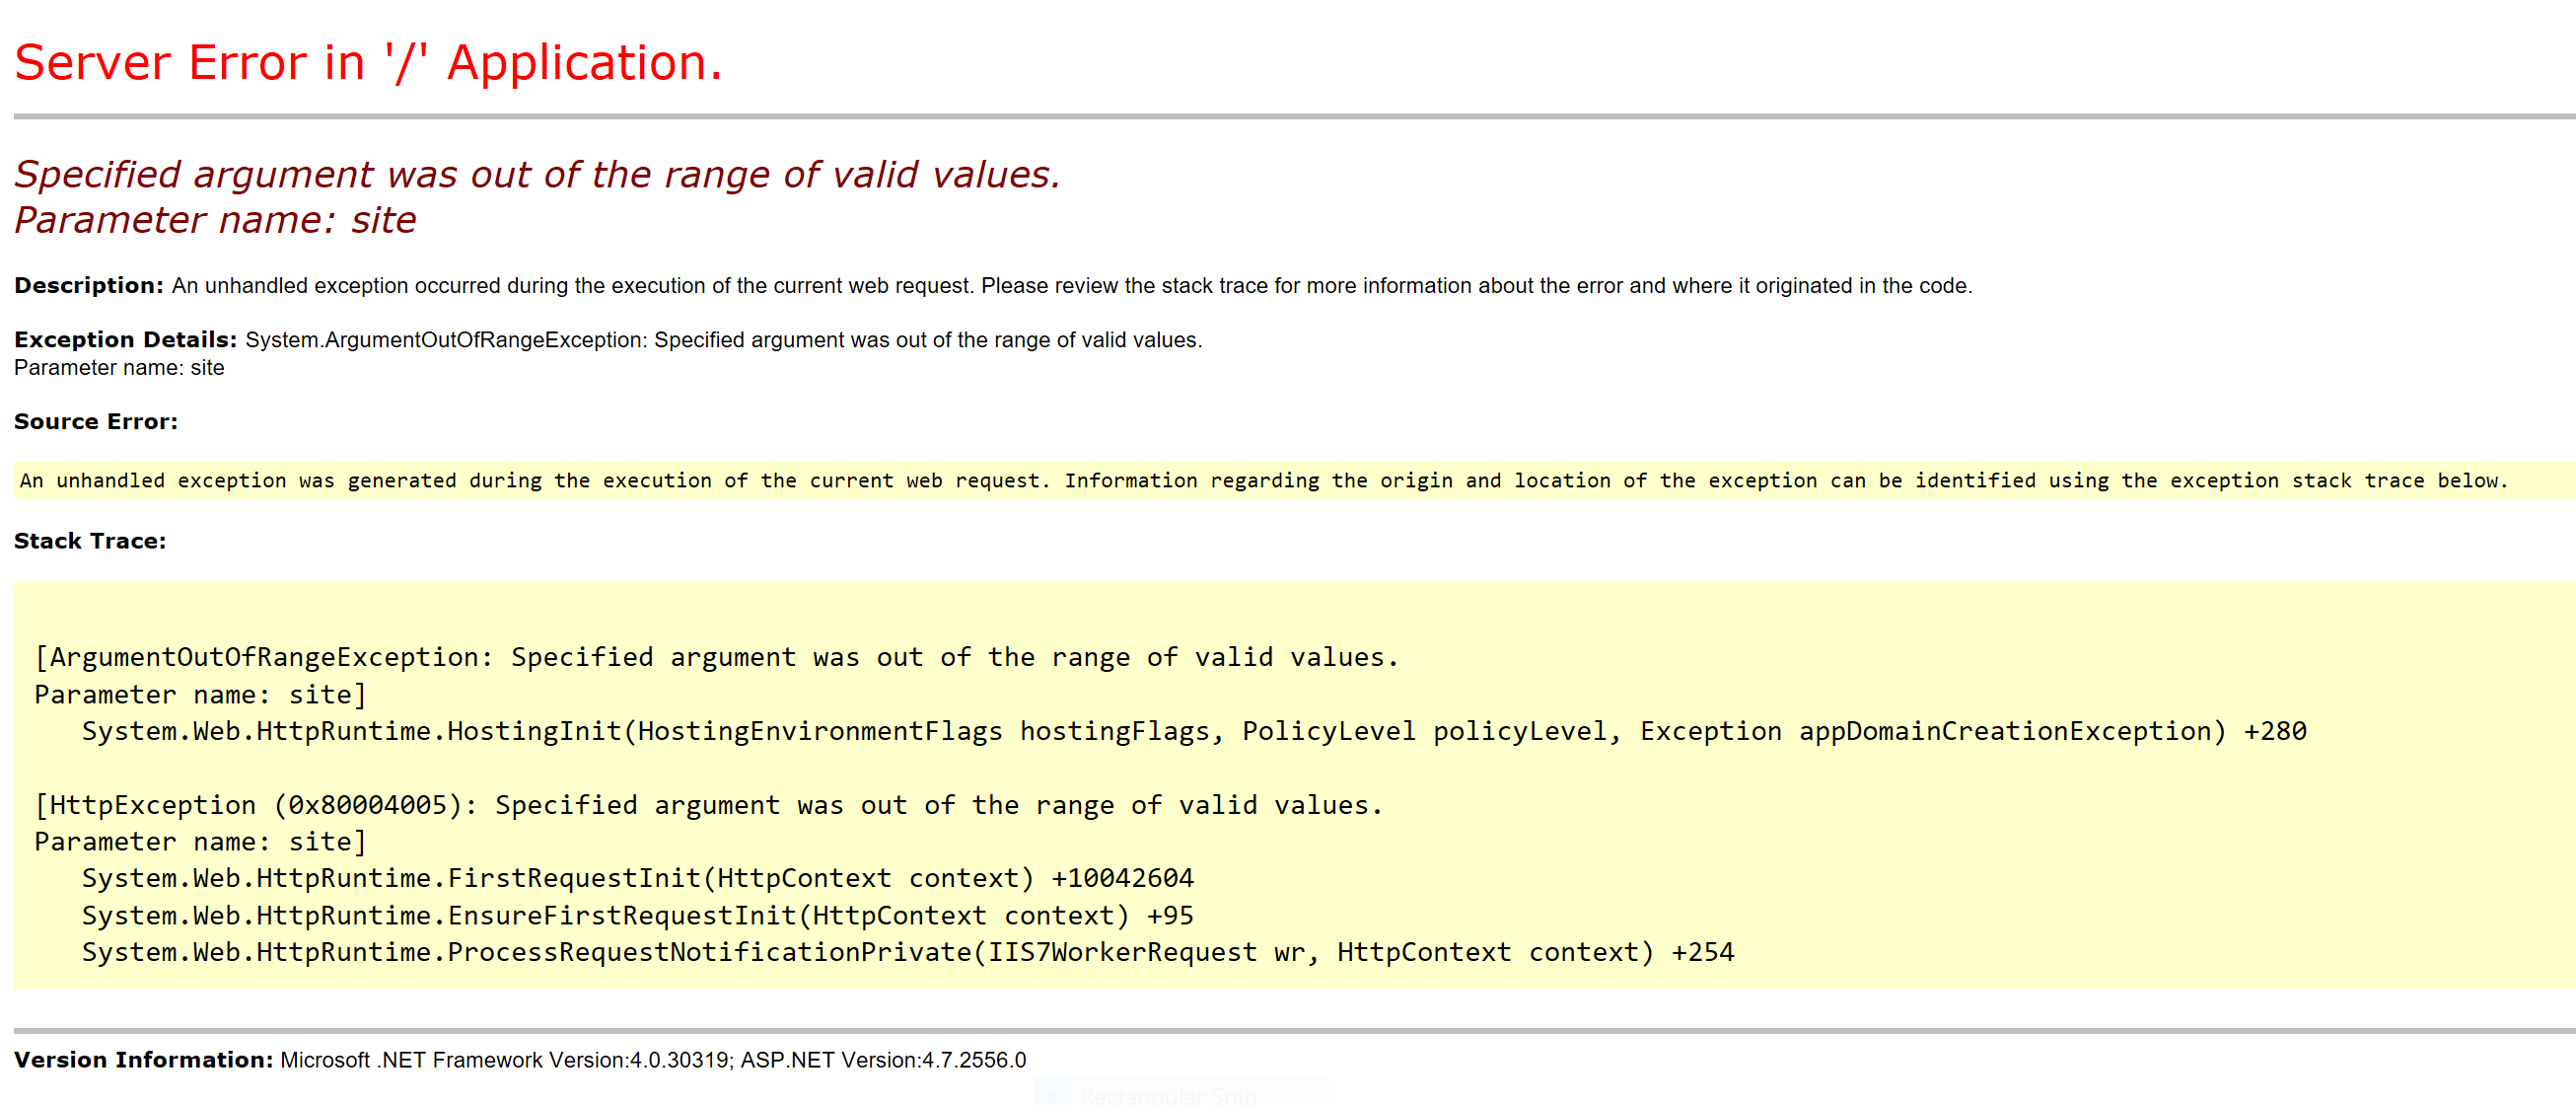 Specified argument was out of the range of valid values 0x800004005